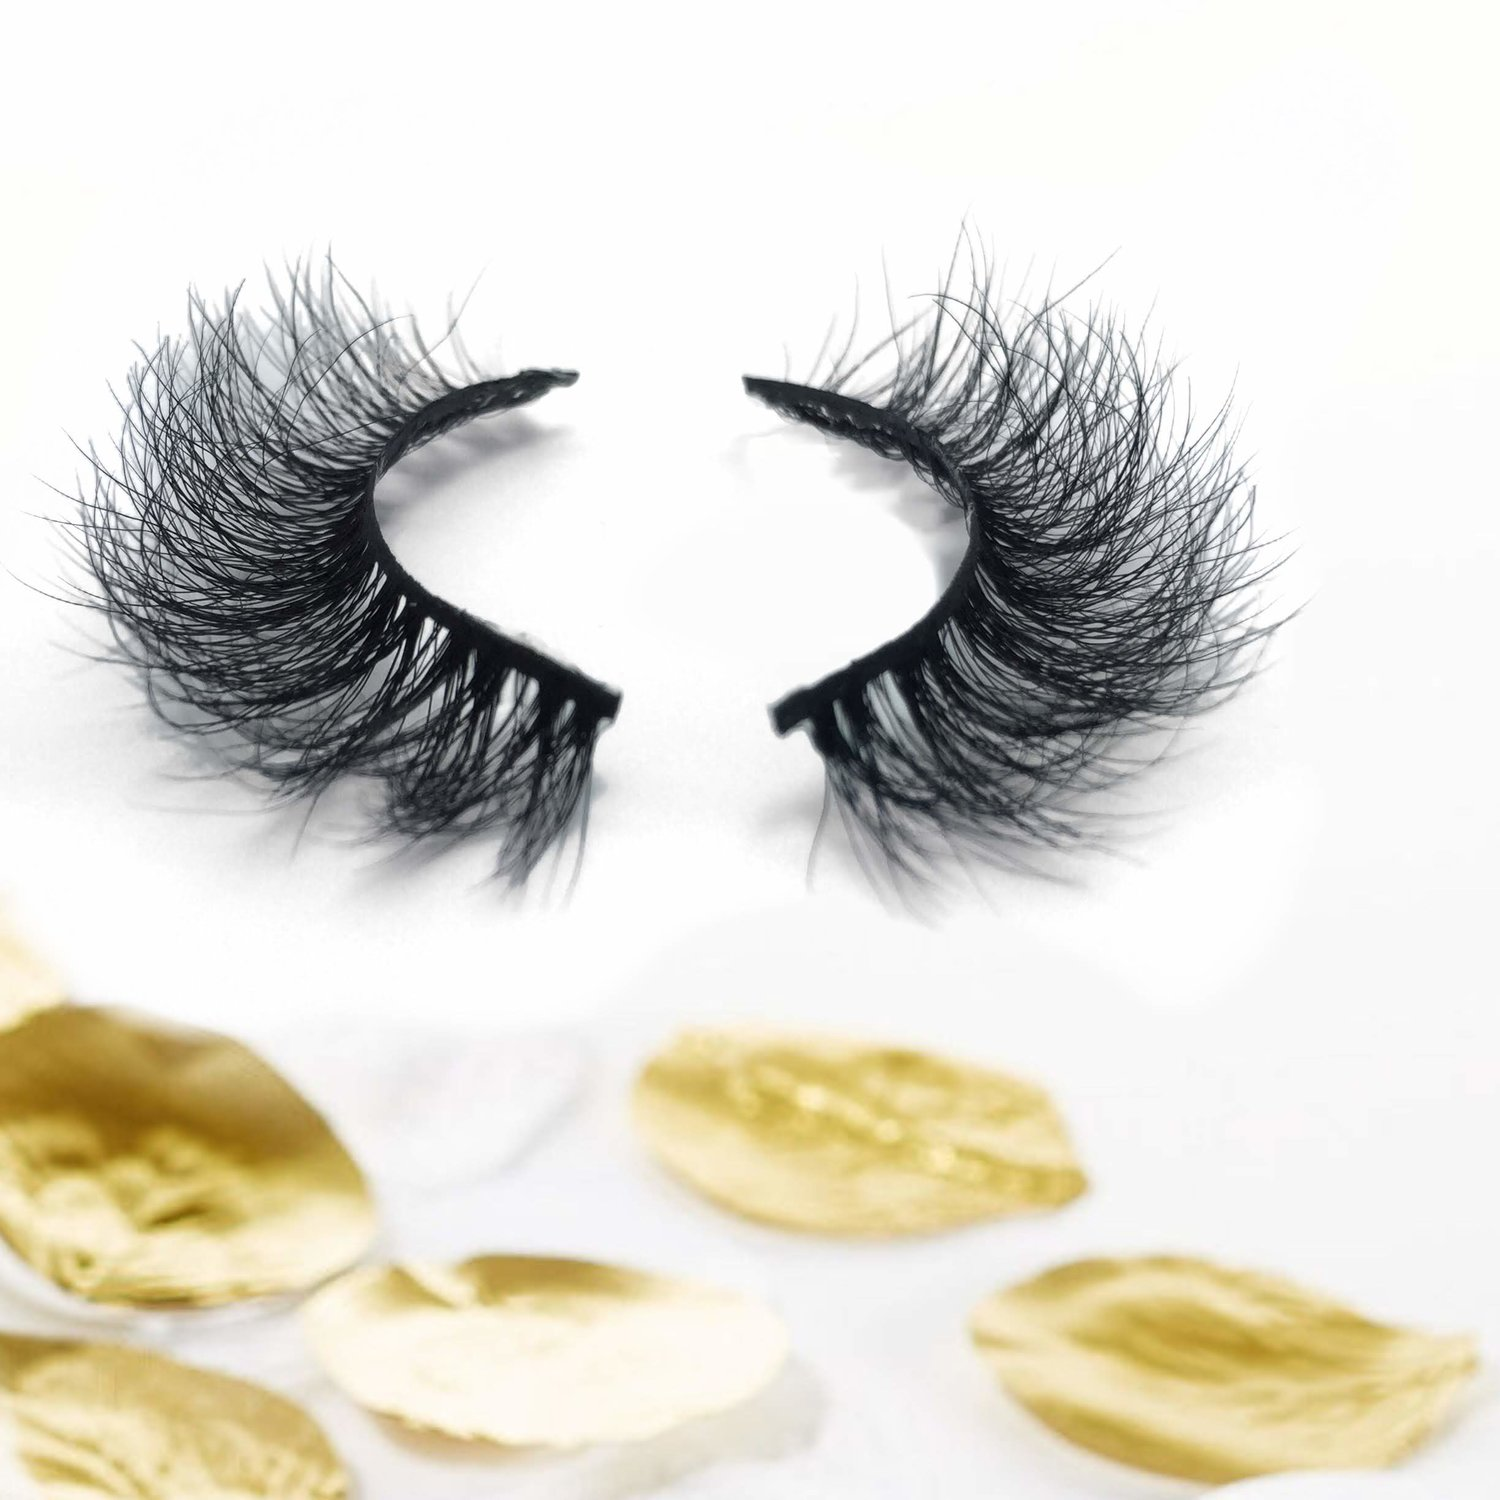 KUBA - The fluffiest, natural lash. Perfect middle ground between glam and everyday wear.BUY NOW